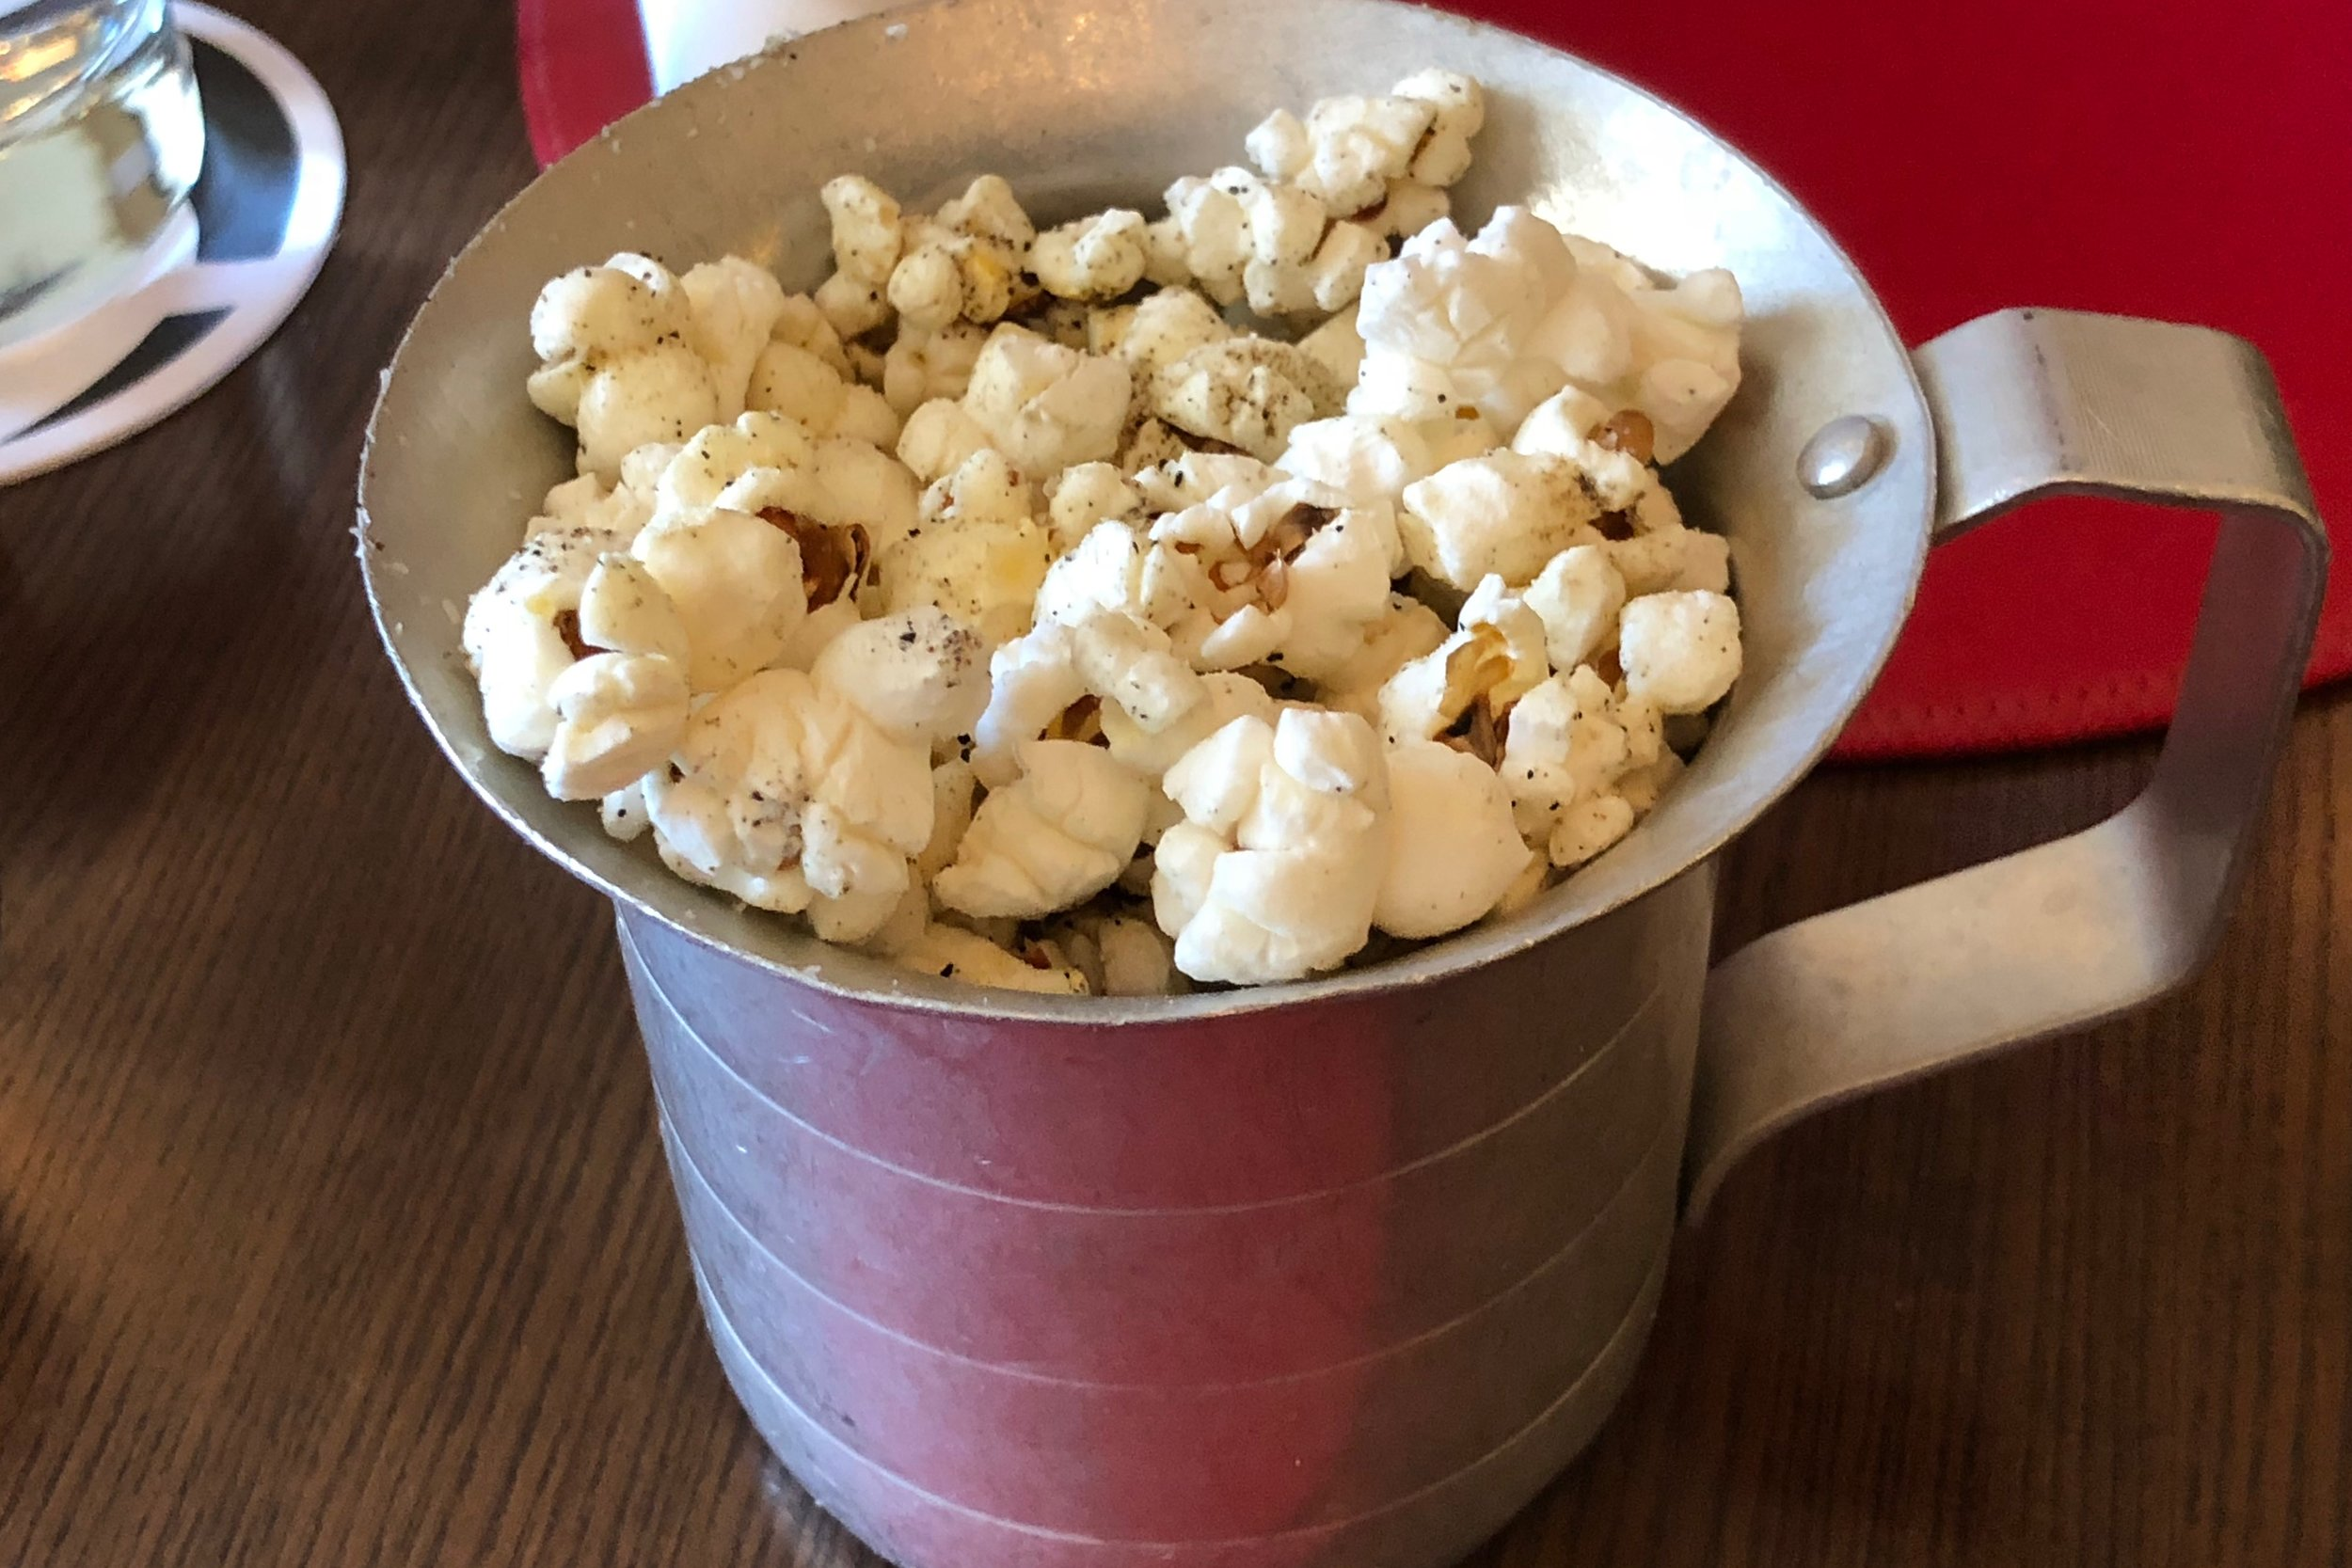 Garlic-pepper popcorn